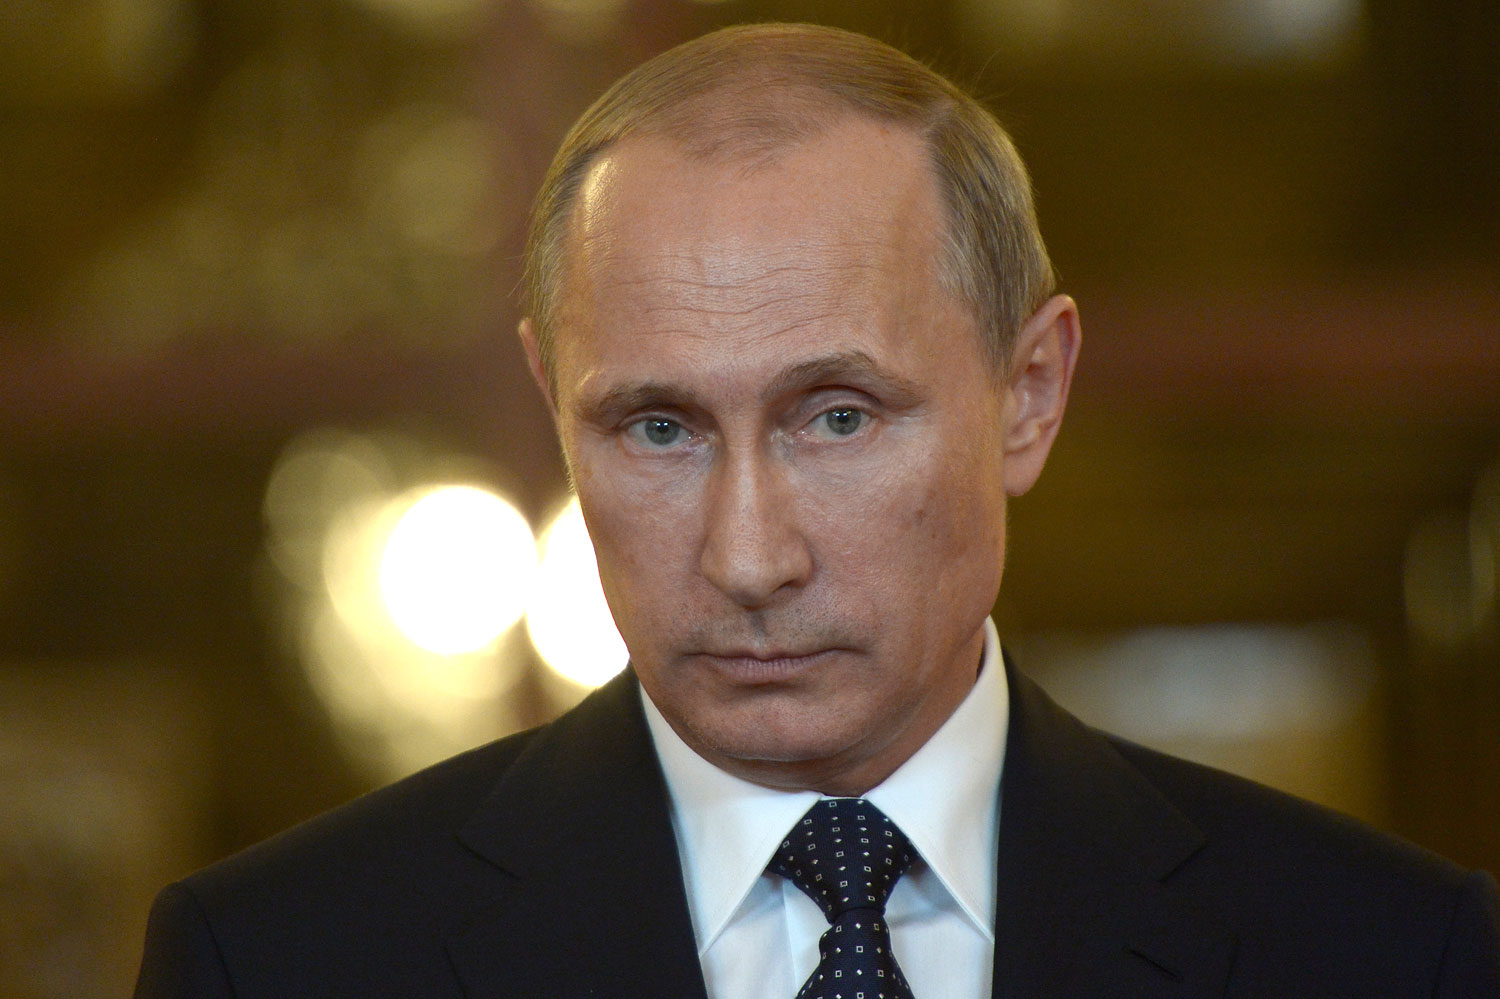 Russia's President Vladimir Putin talks to reporters during a meeting in Brasilia, July 16, 2014.